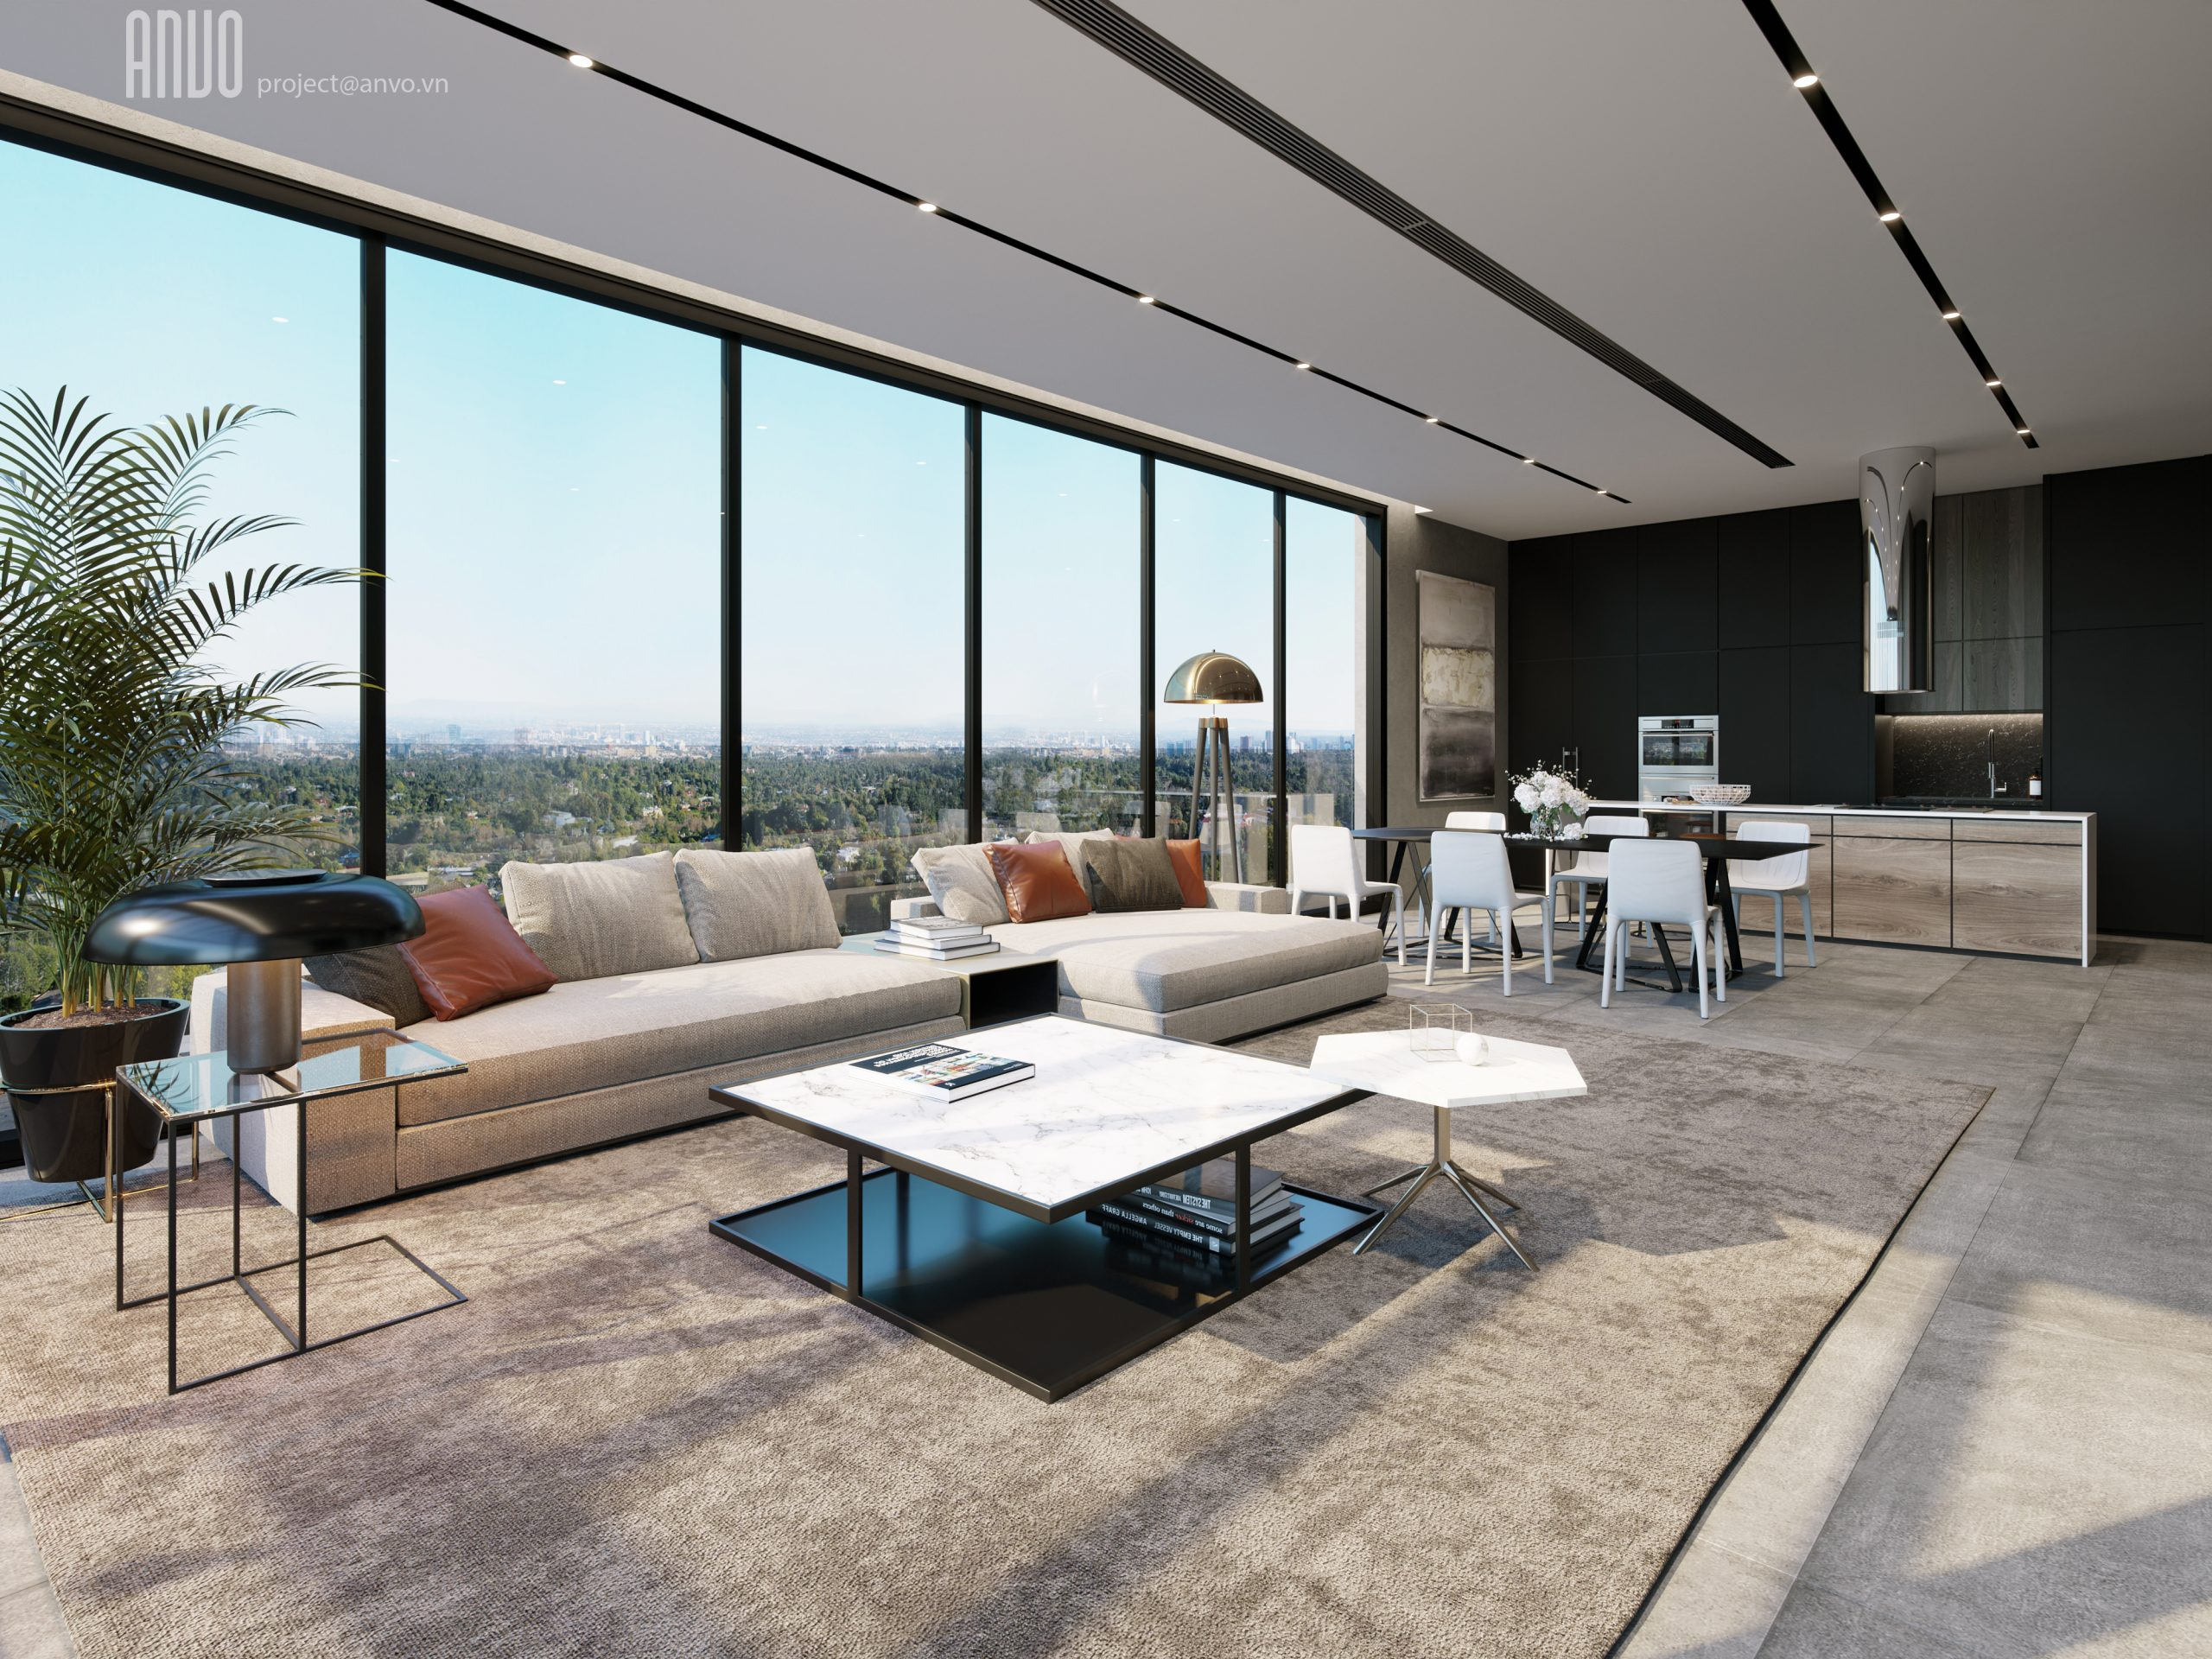 Penthouse_anvo.vn_02